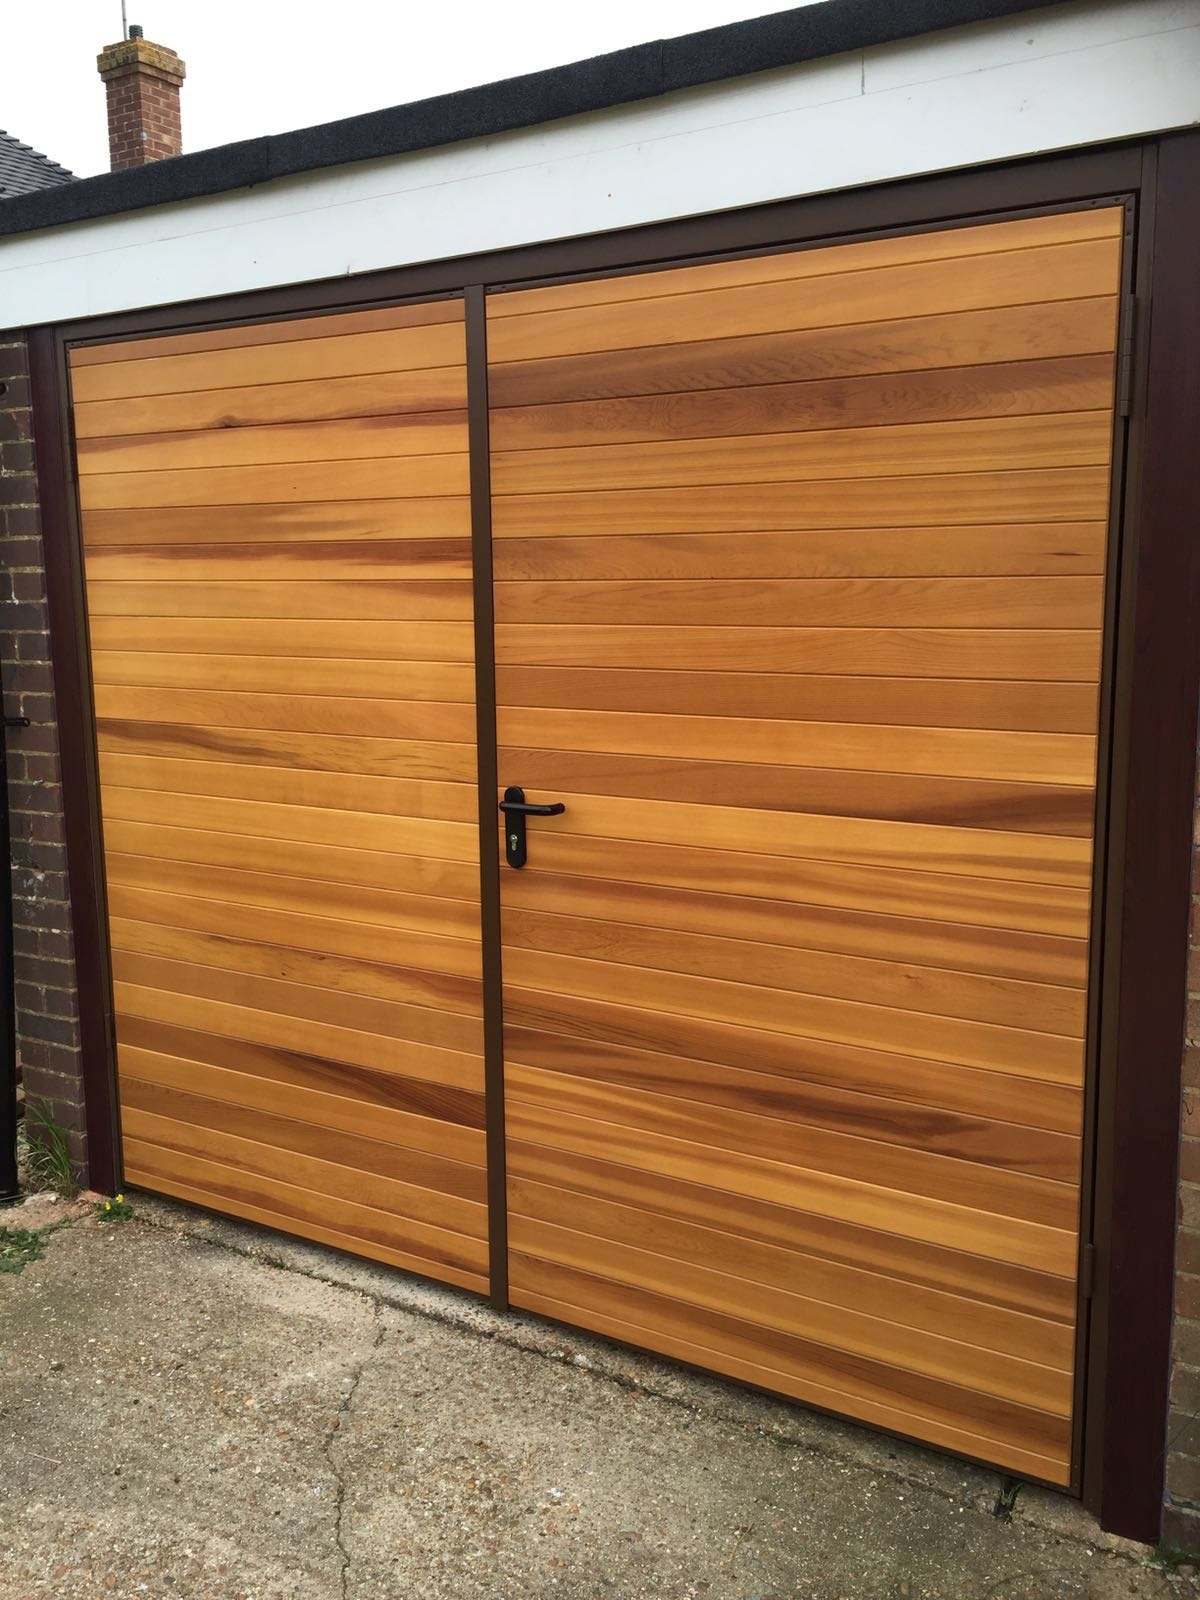 How To Measure For A Replacement Garage Door